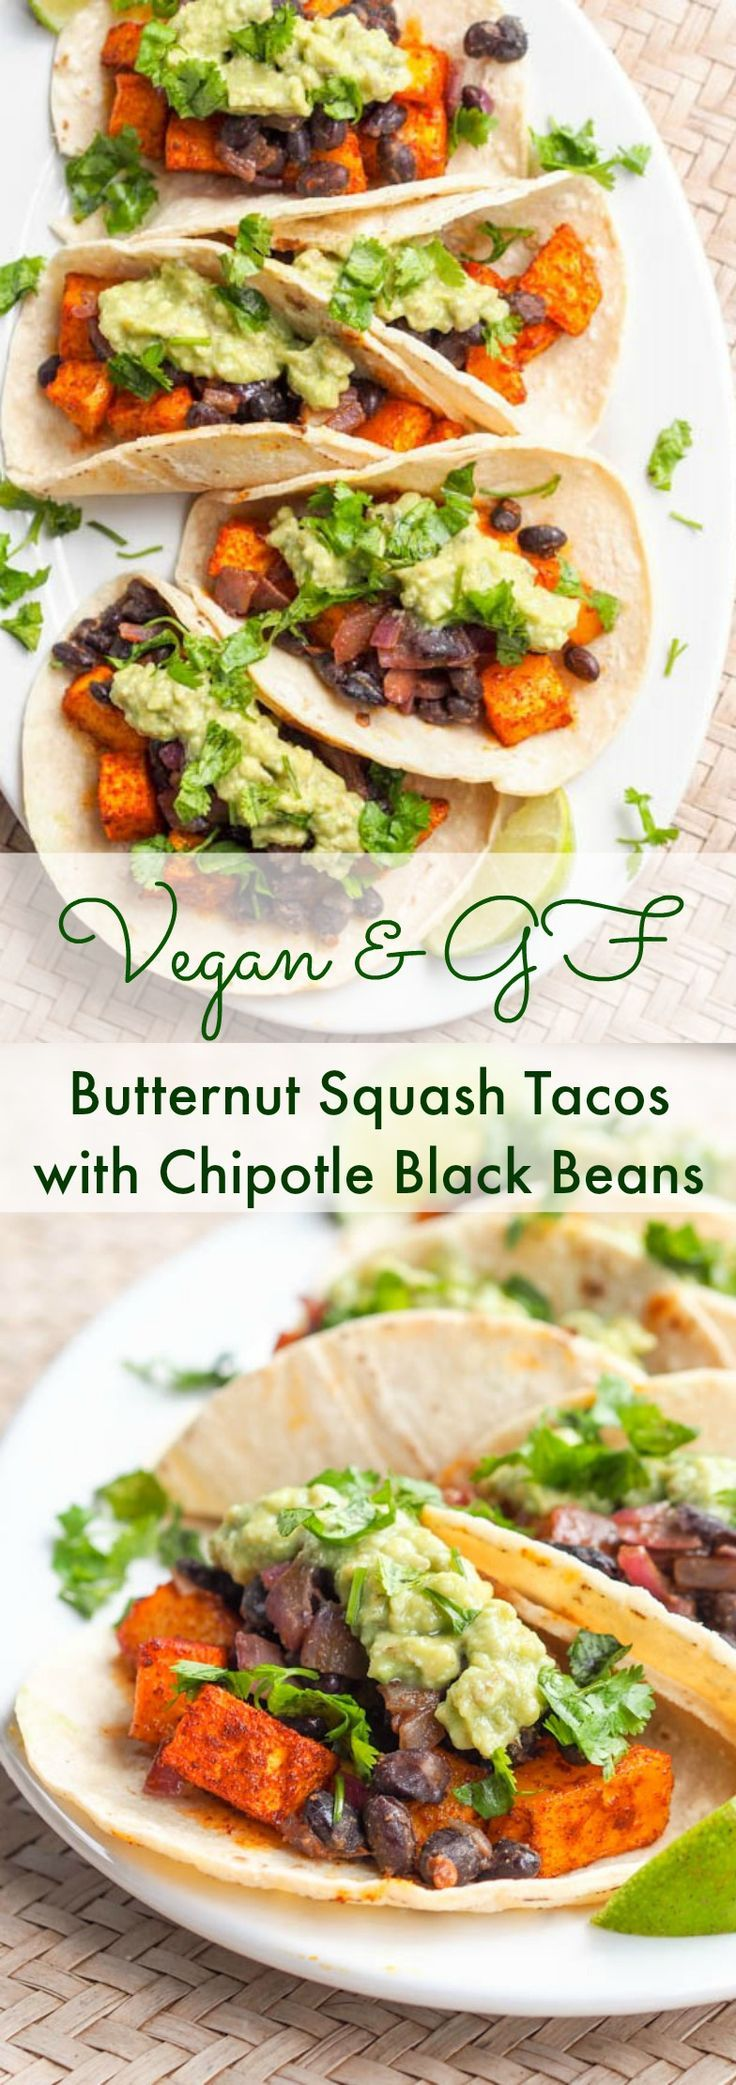 Vegan butternut squash tacos with chipotle black beans are bound to be ...